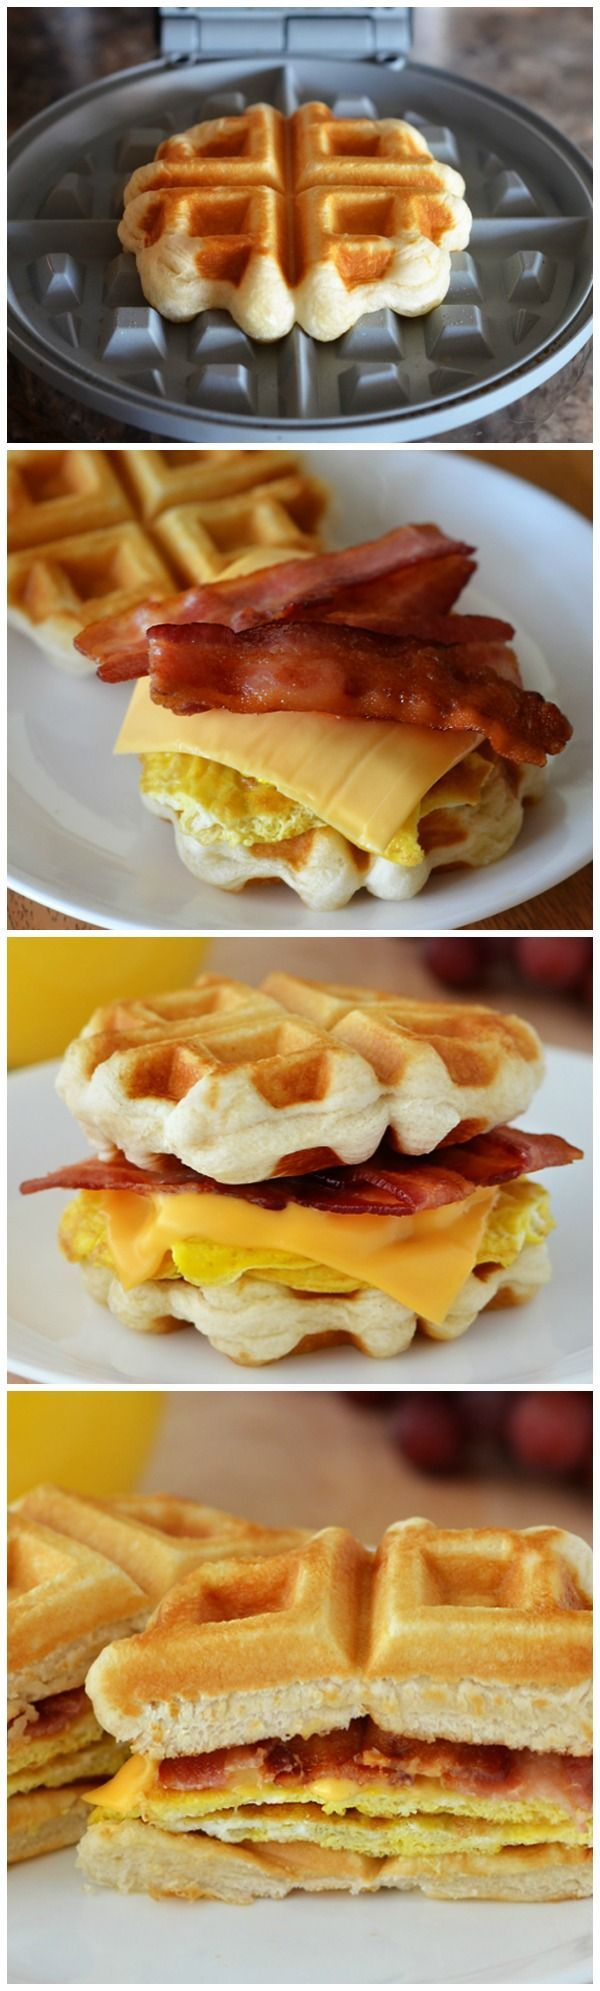 Grab-and-Go Waffle Breakfast Sandwiches from Grands! biscuits. ^^^ Get your healthy recipes now!